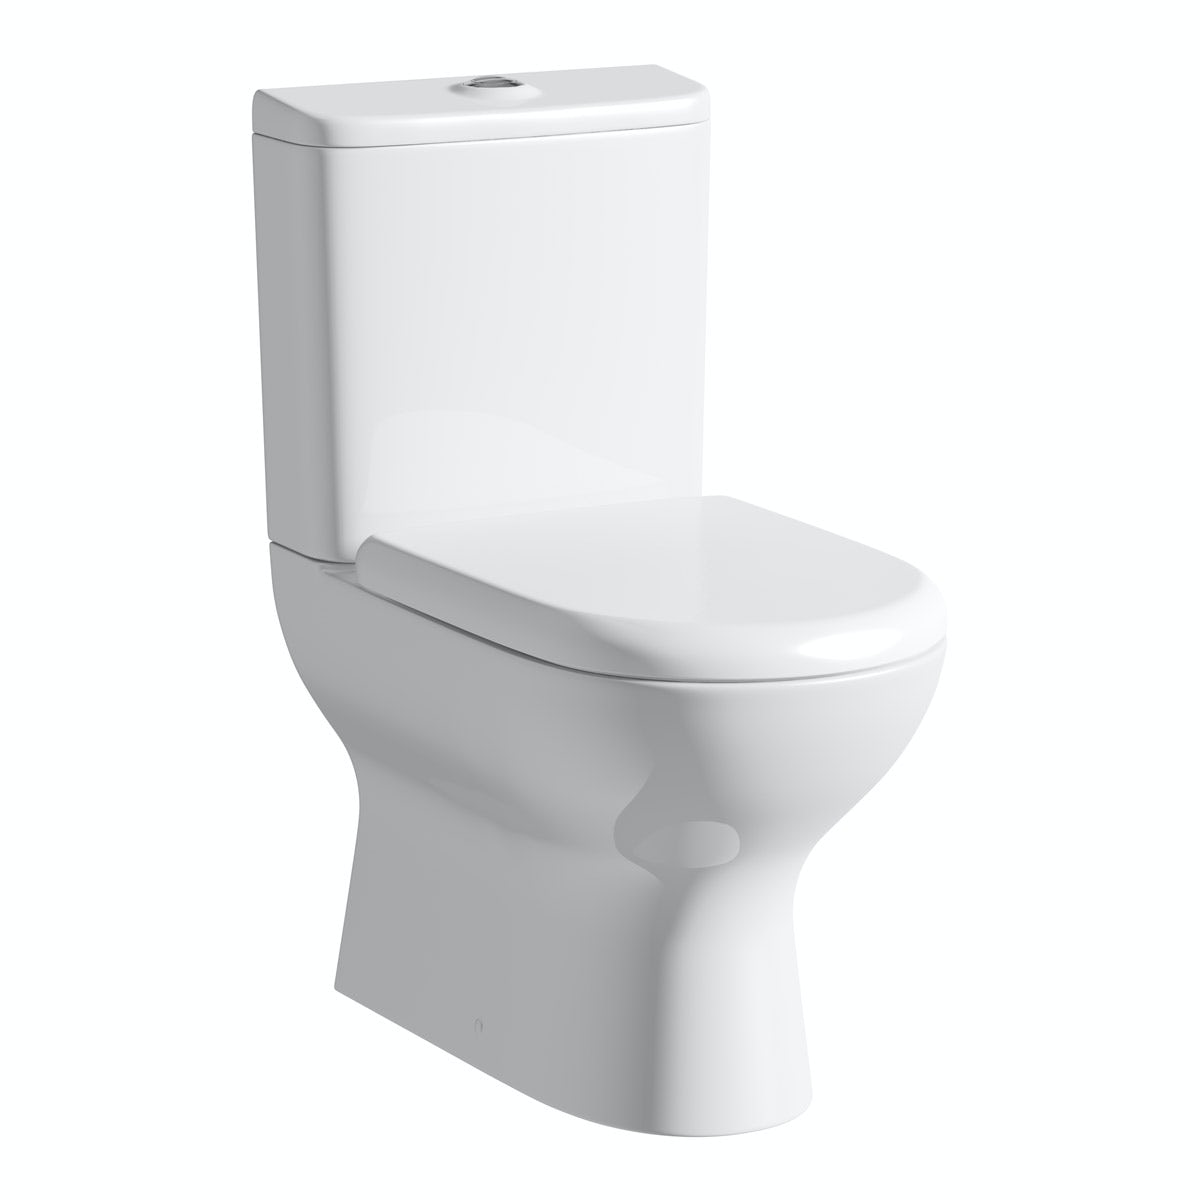 Mode Fairbanks close coupled toilet with soft close toilet seat